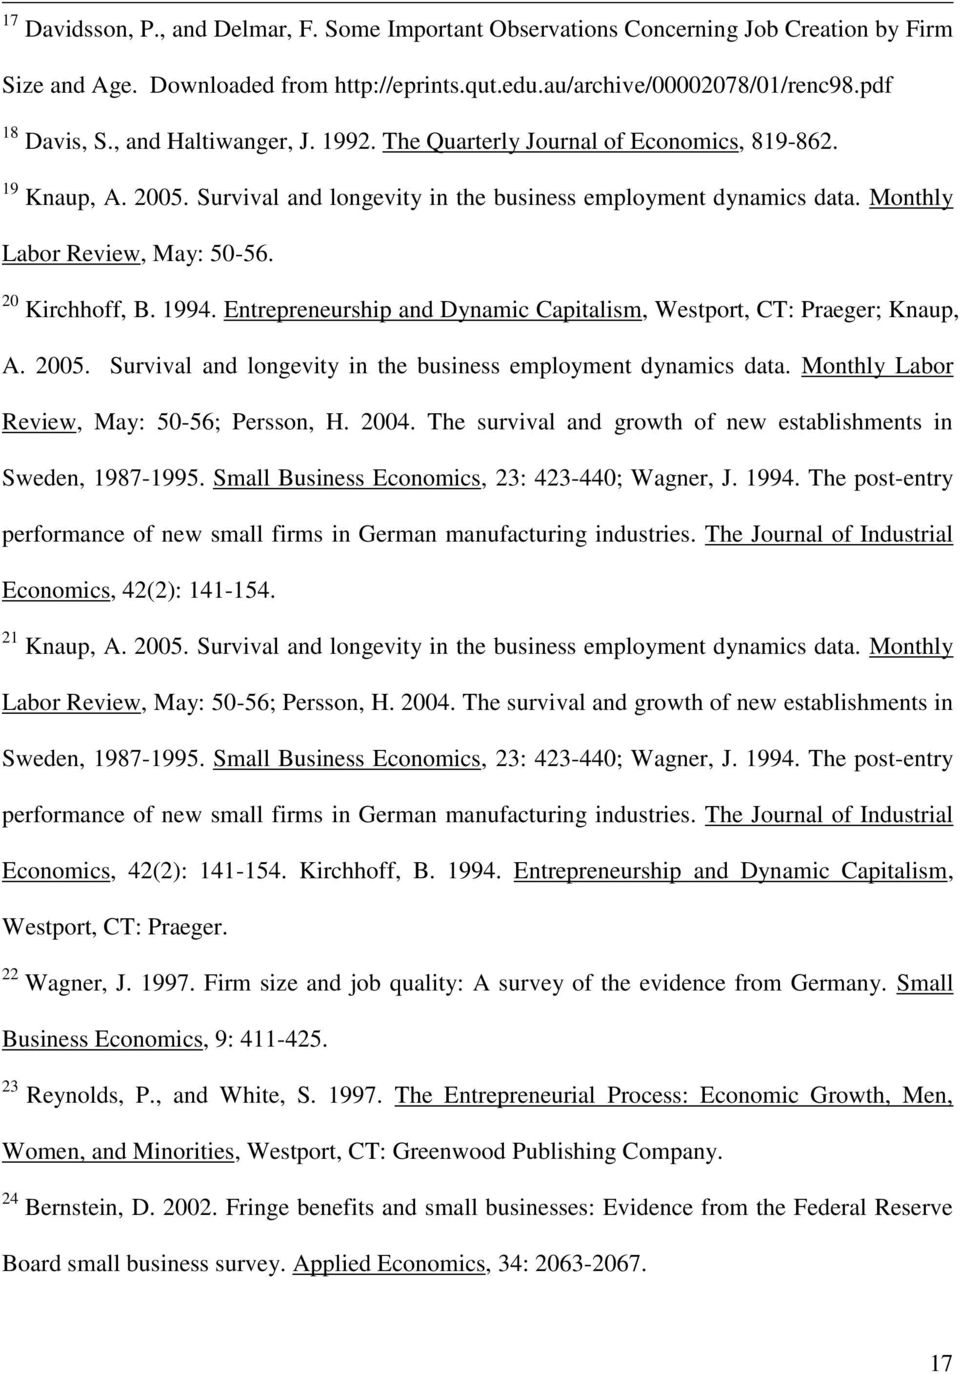 20 Kirchhoff, B. 1994. Entrepreneurship and Dynamic Capitalism, Westport, CT: Praeger; Knaup, A. 2005. Survival and longevity in the business employment dynamics data.